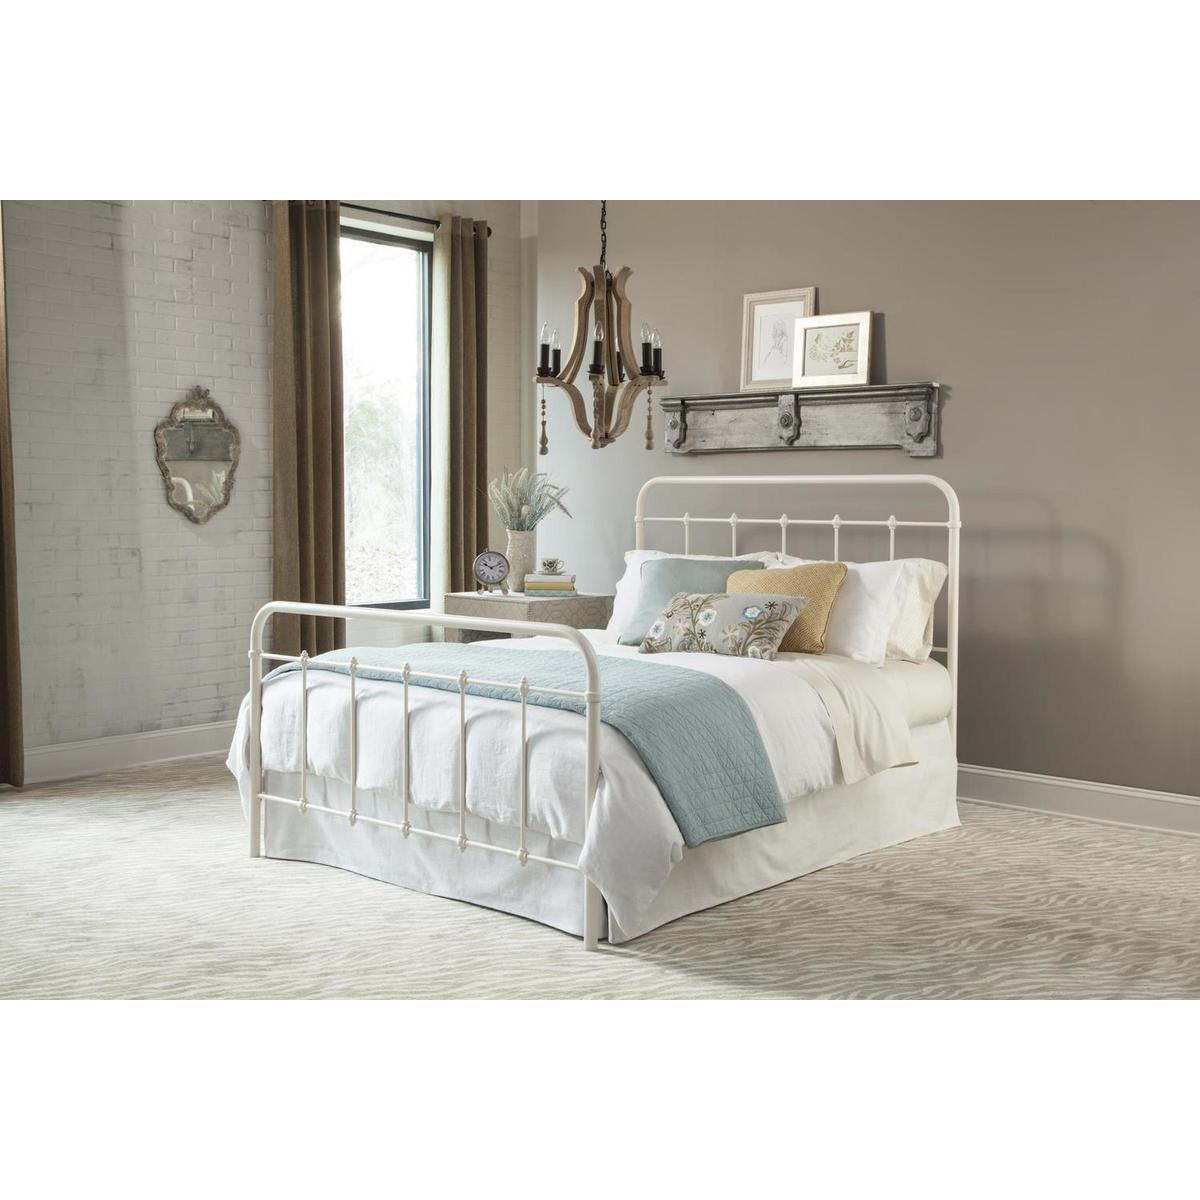 See Details - Queen Antique White Farmhouse Bed